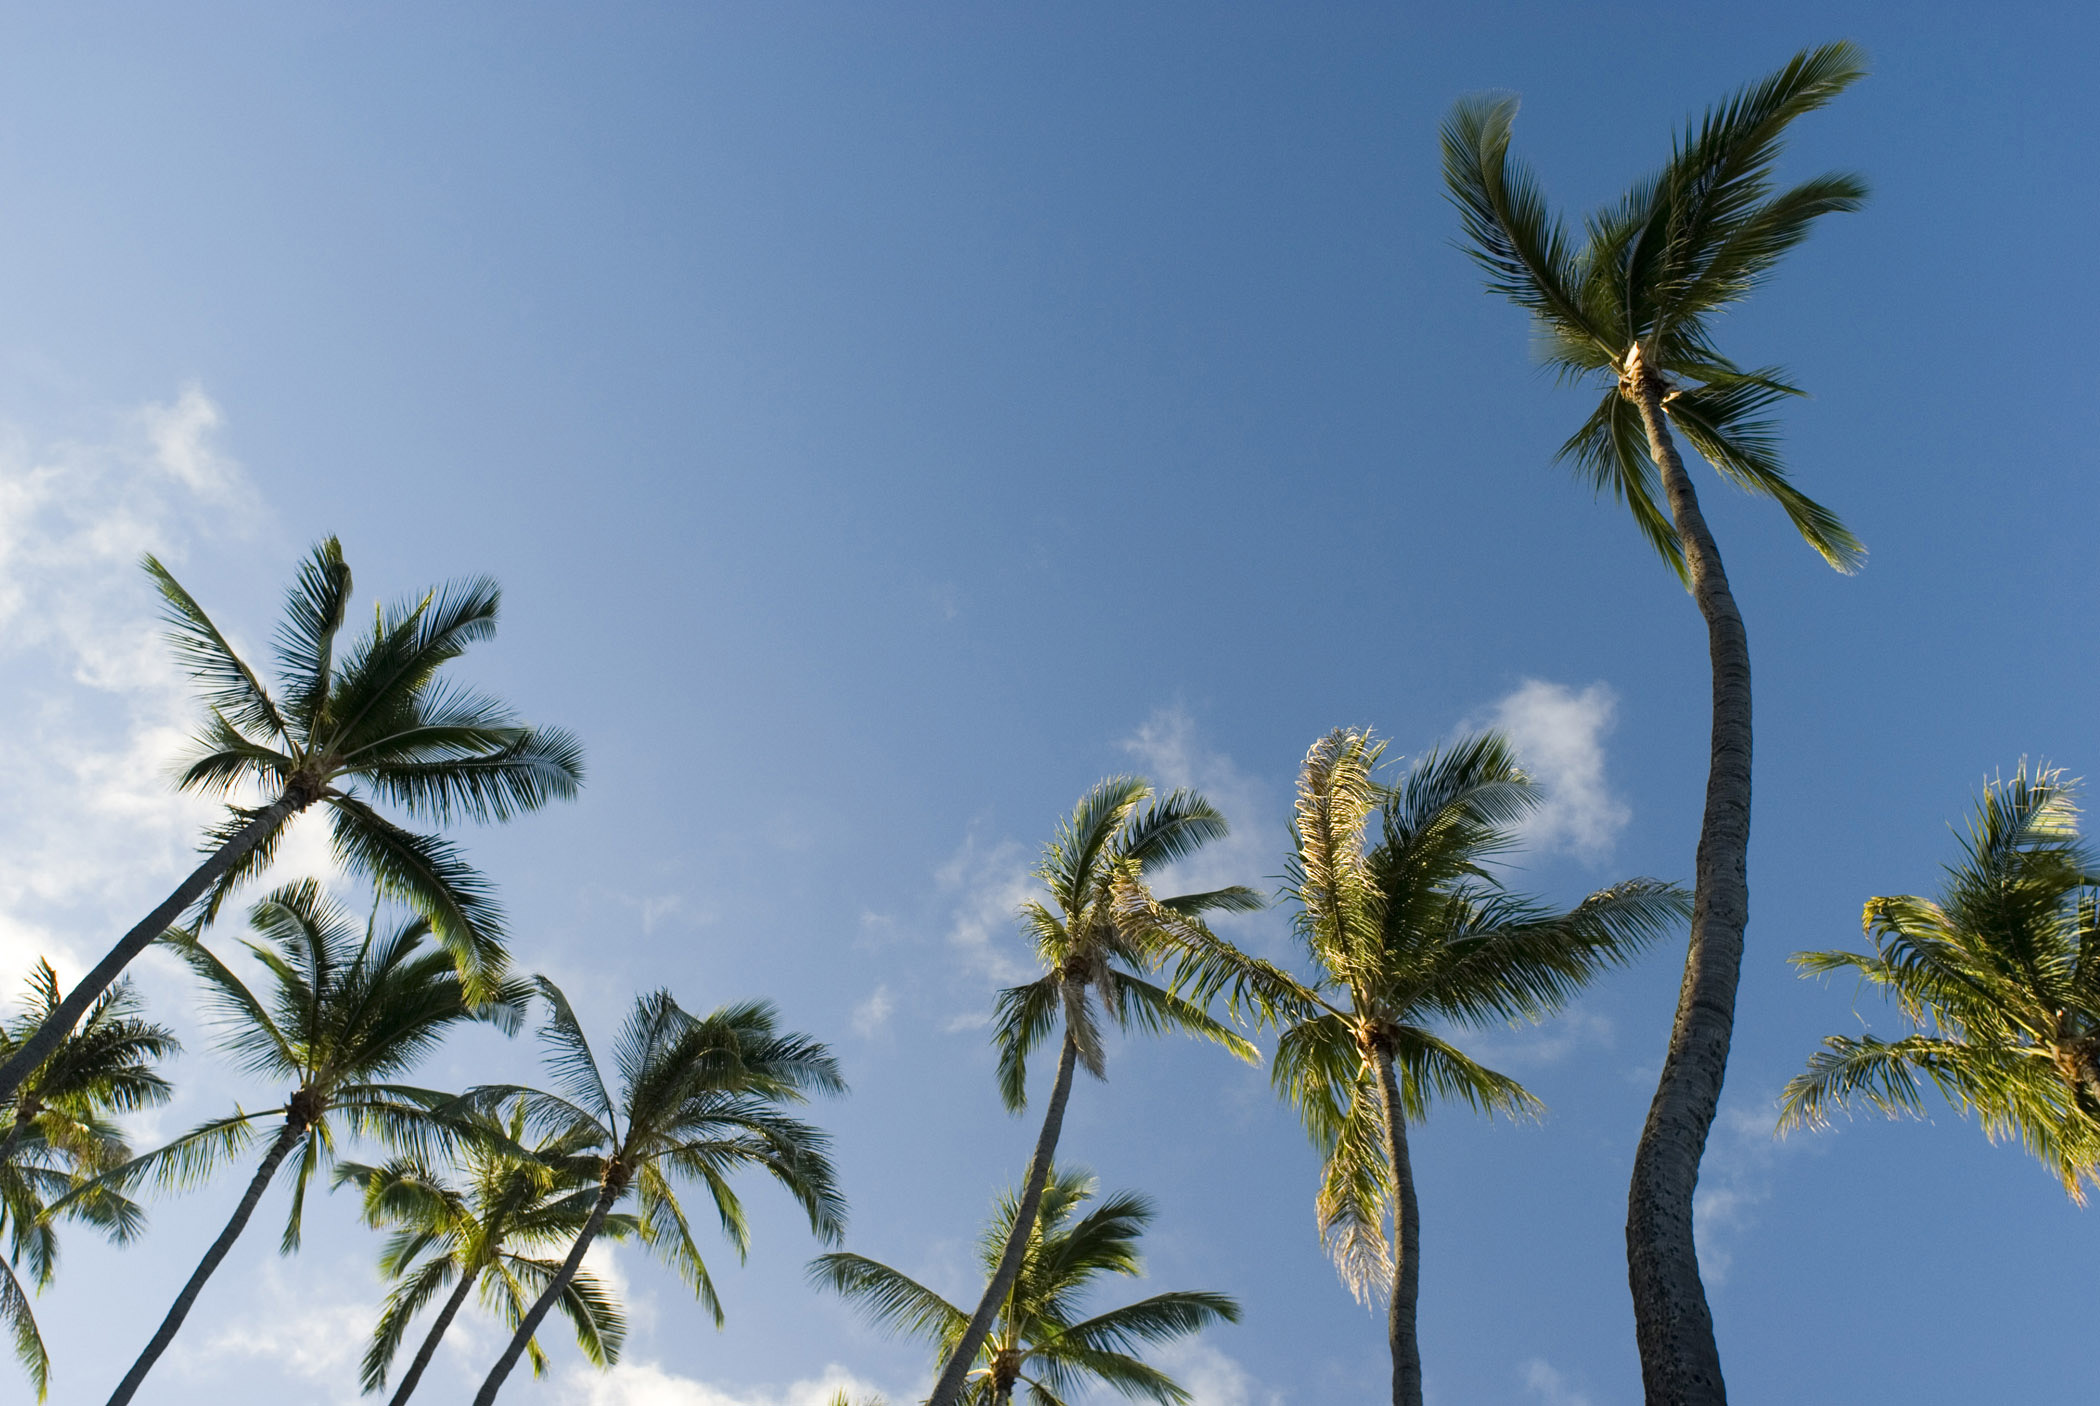 Free Fall Themed Desktop Wallpaper Free Stock Photo Of Tall Palm Trees In Worms Eye View